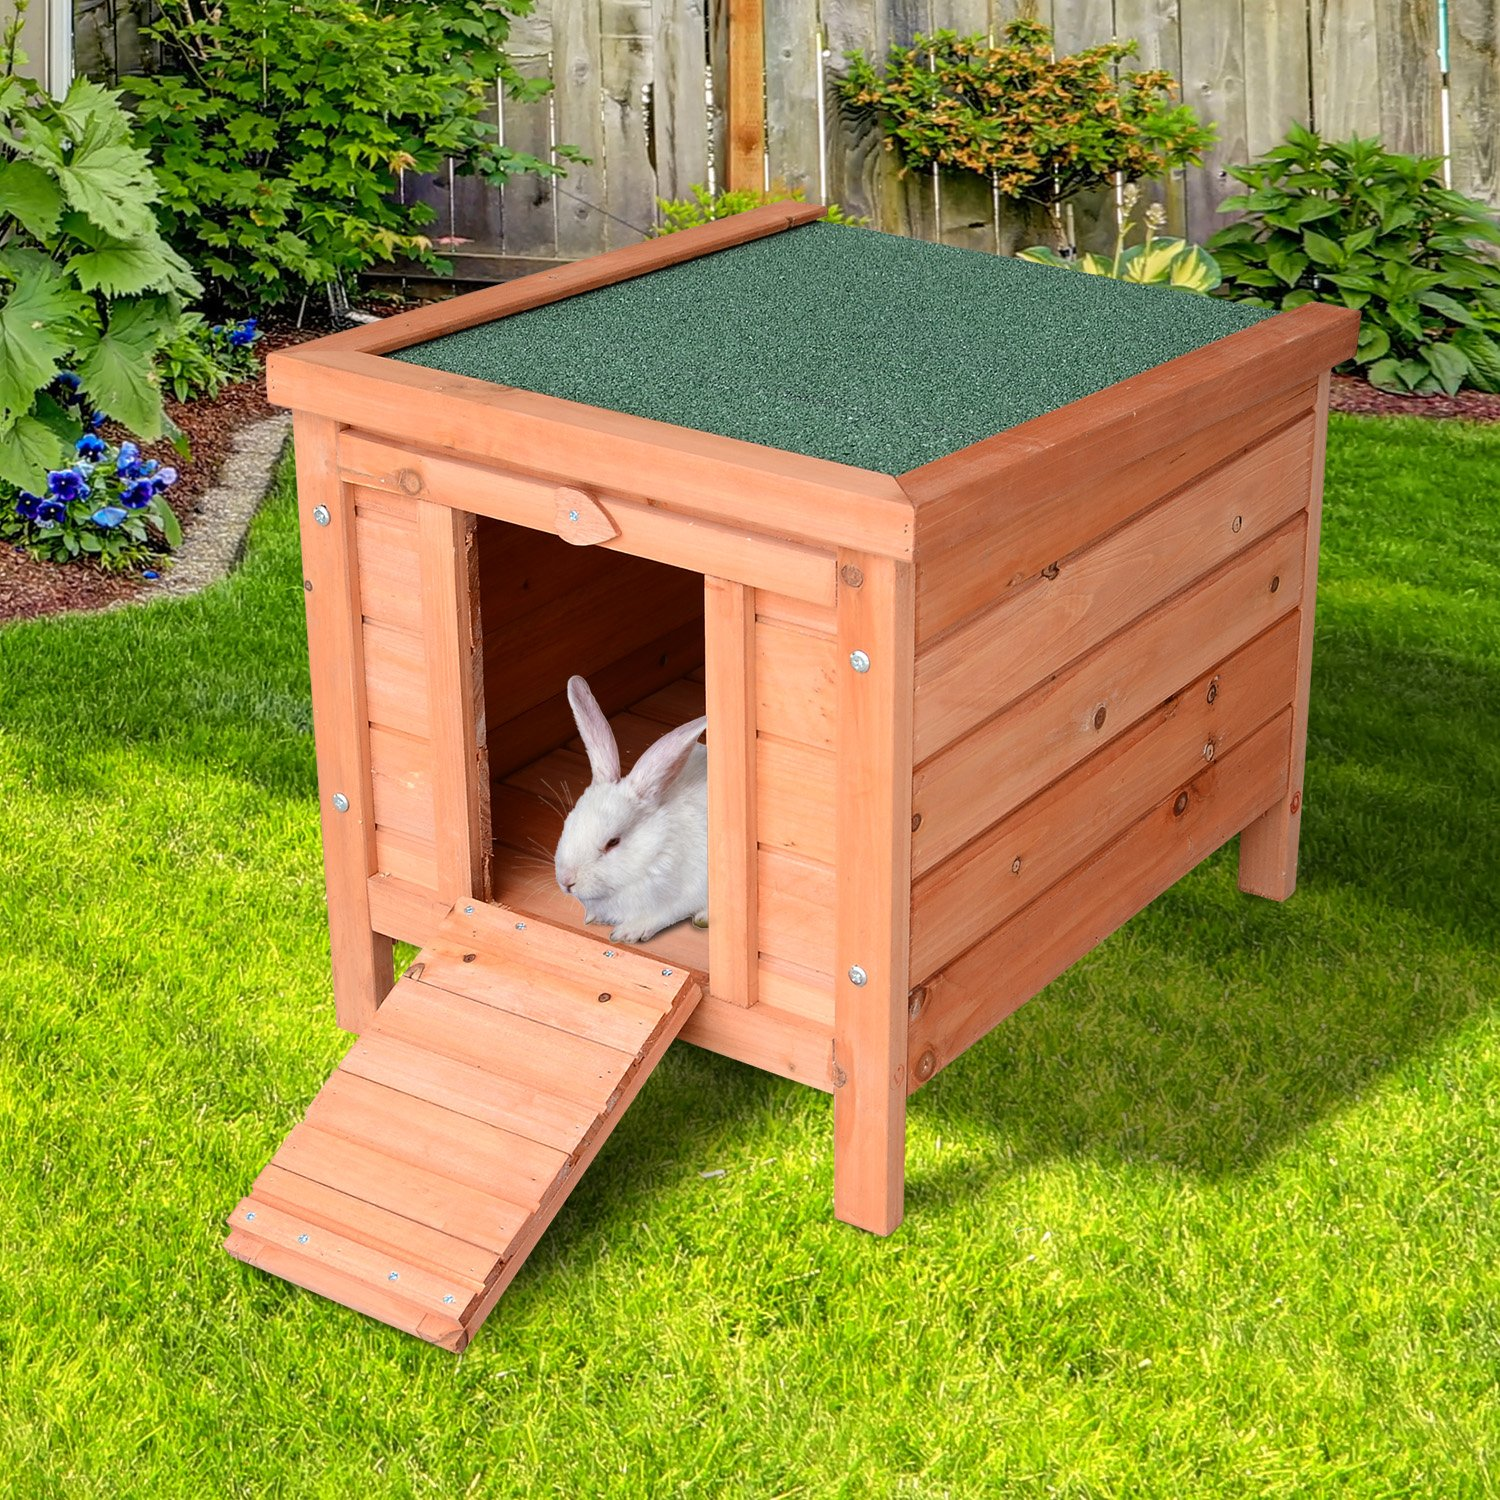 PawHut Small Wooden Bunny Rabbit/Guinea Pig House by PawHut